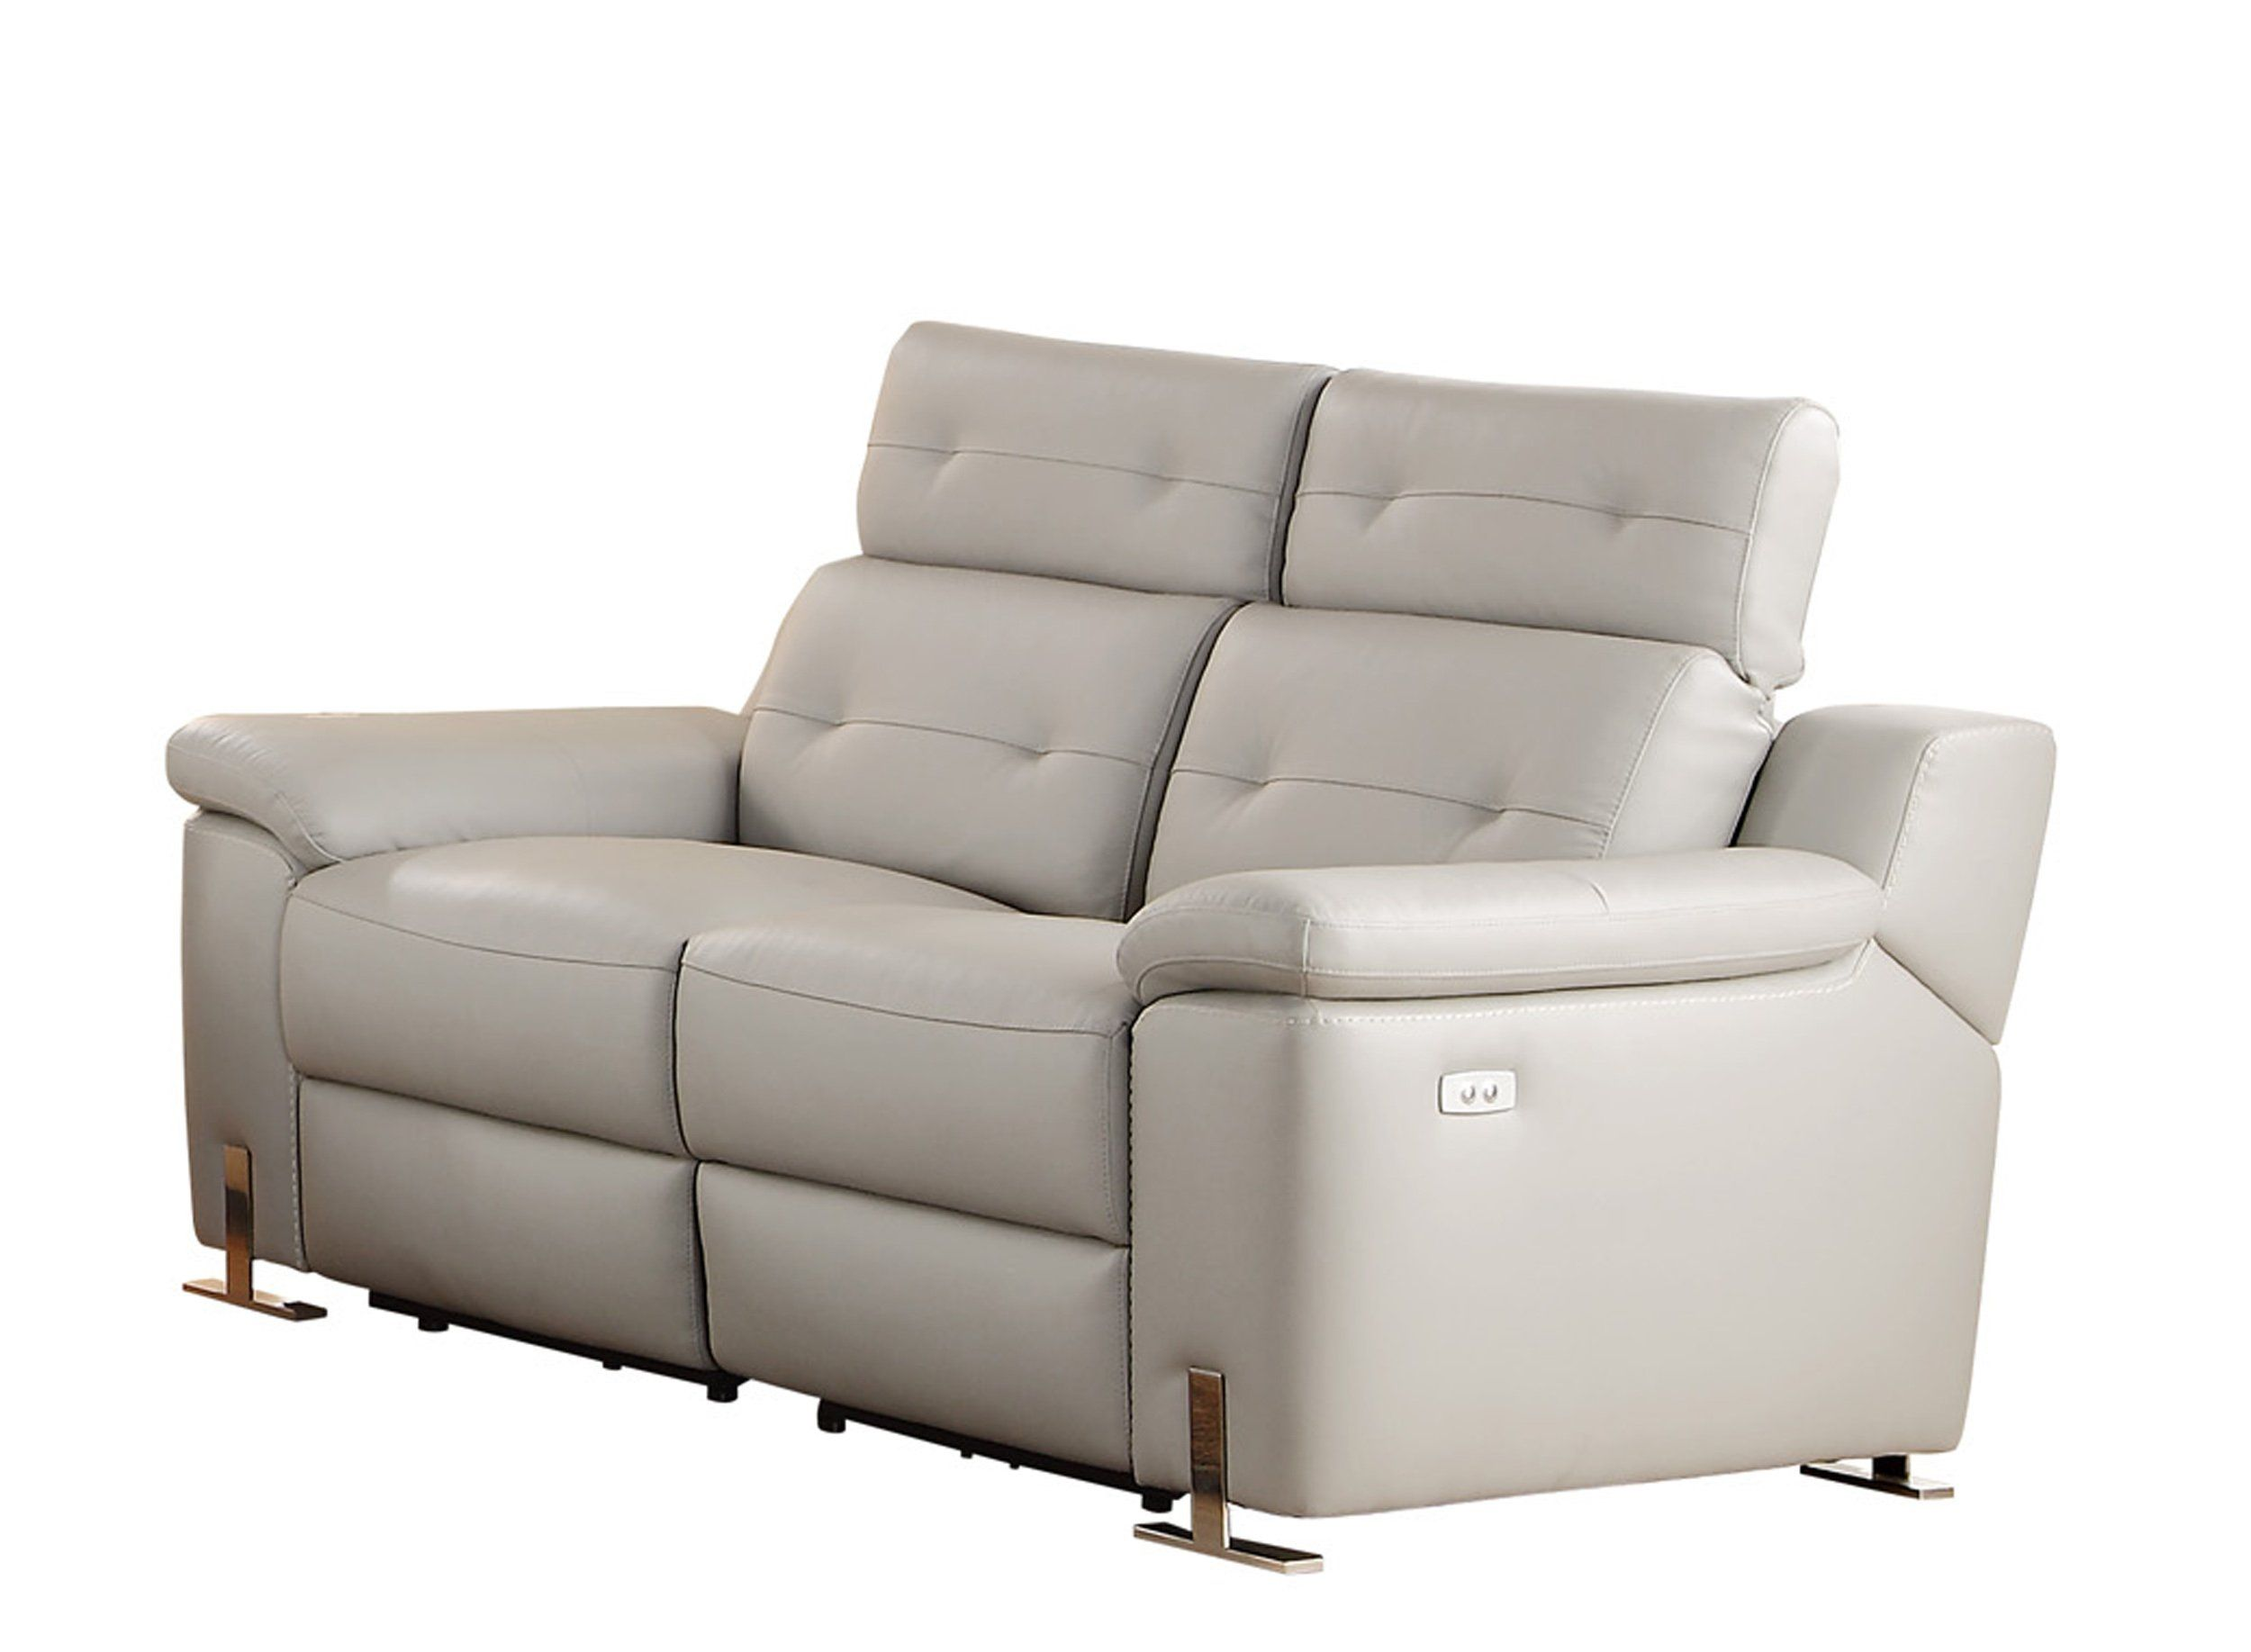 Unique Modern Leather Recliner